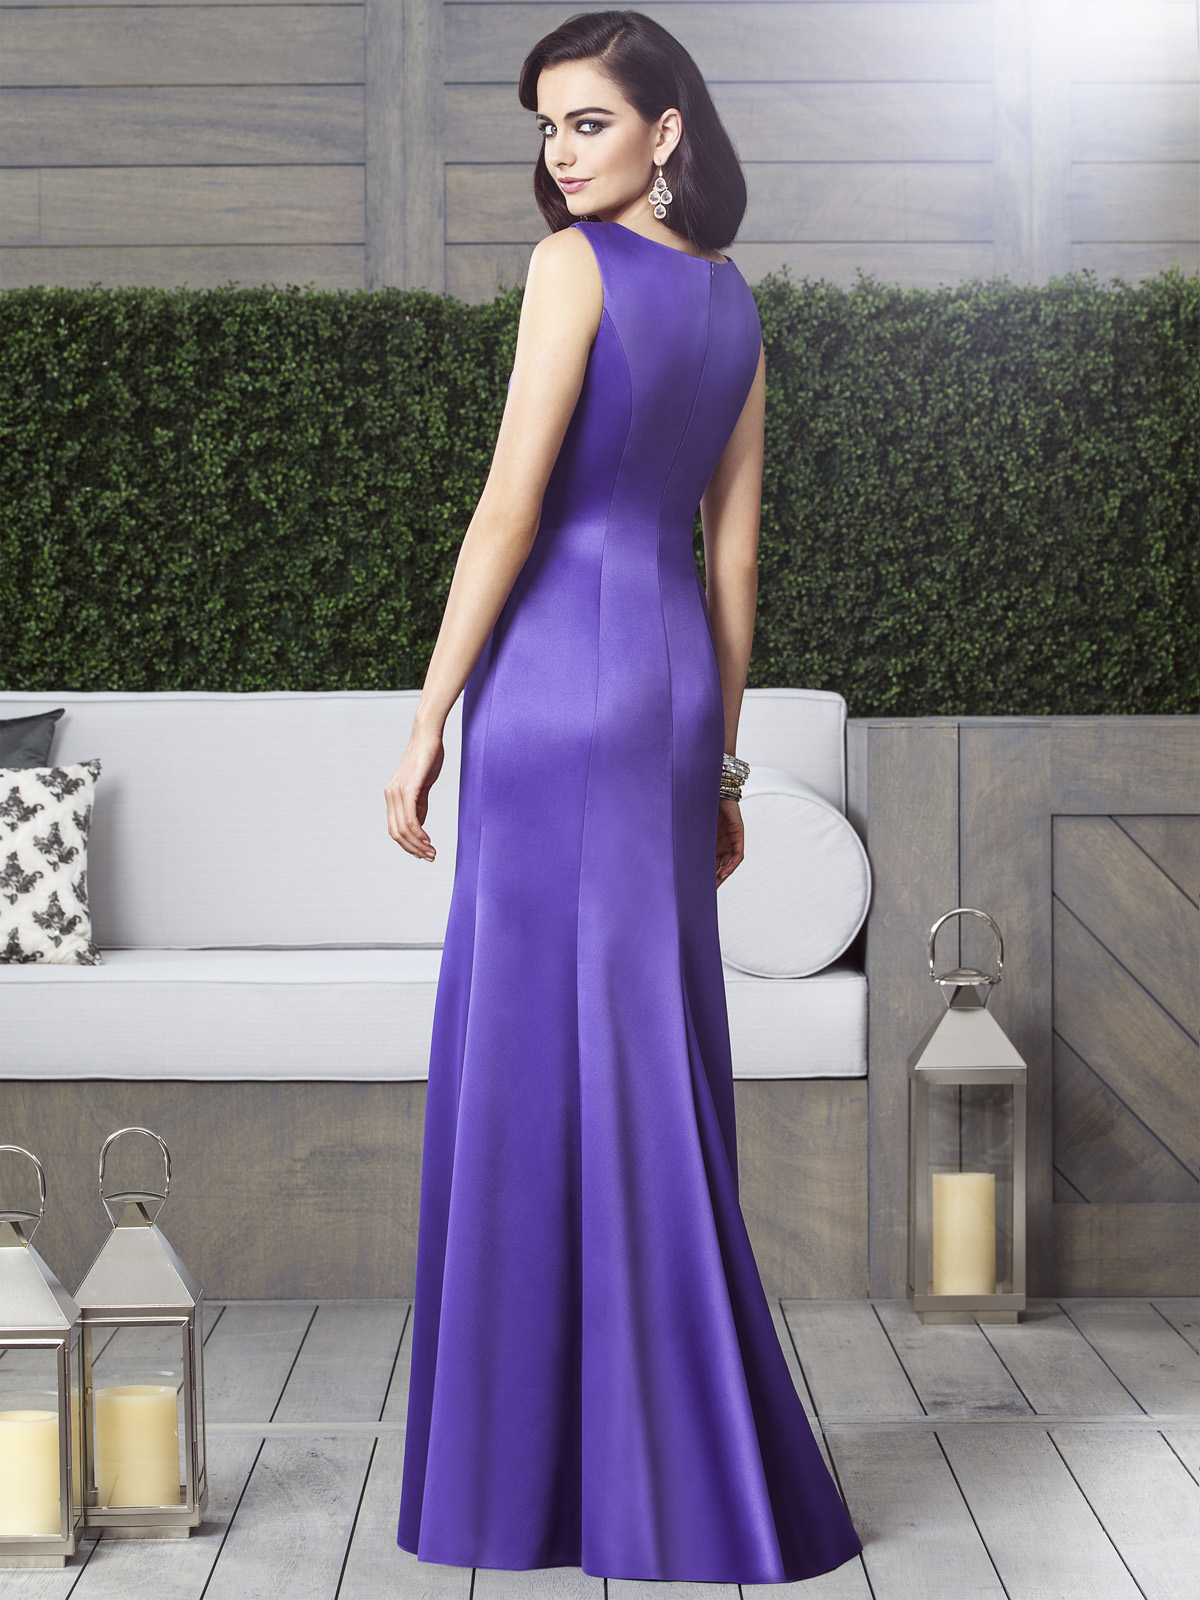 Dessy Bridesmaid Dress 2900: DimitraDesigns.com